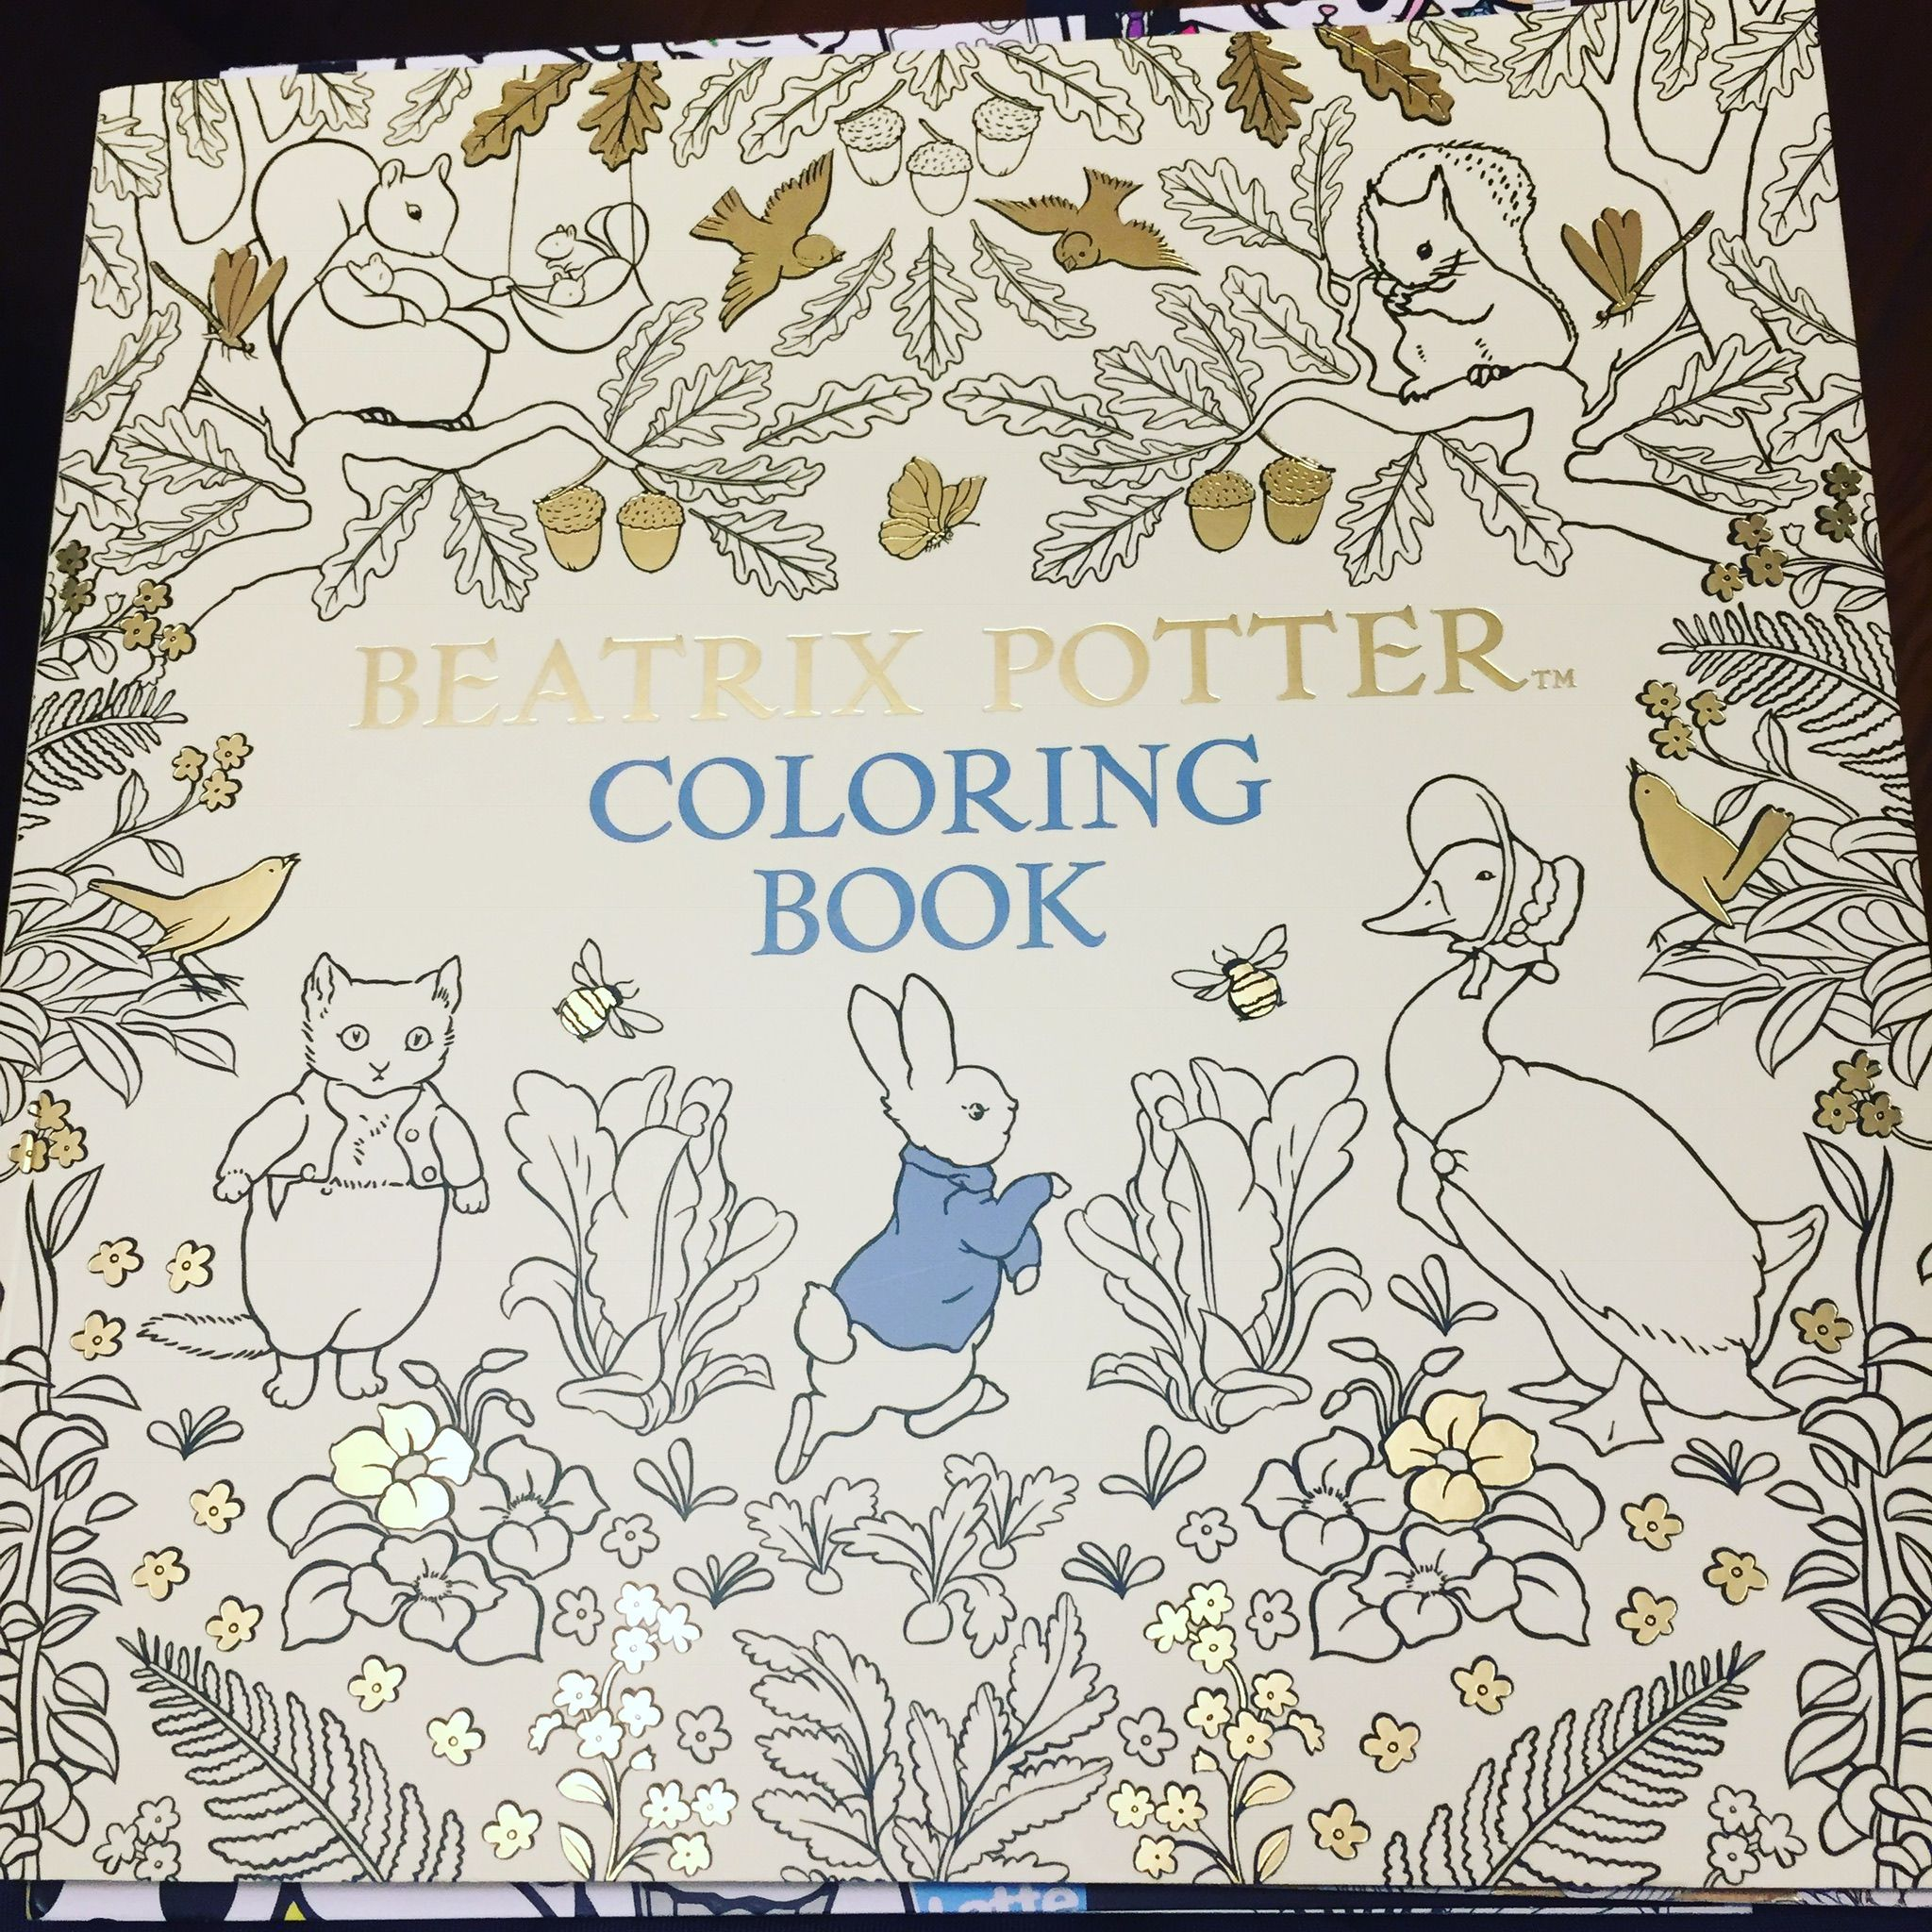 - Pin By Heather Marie Wall On Coloring Books And Books I Own